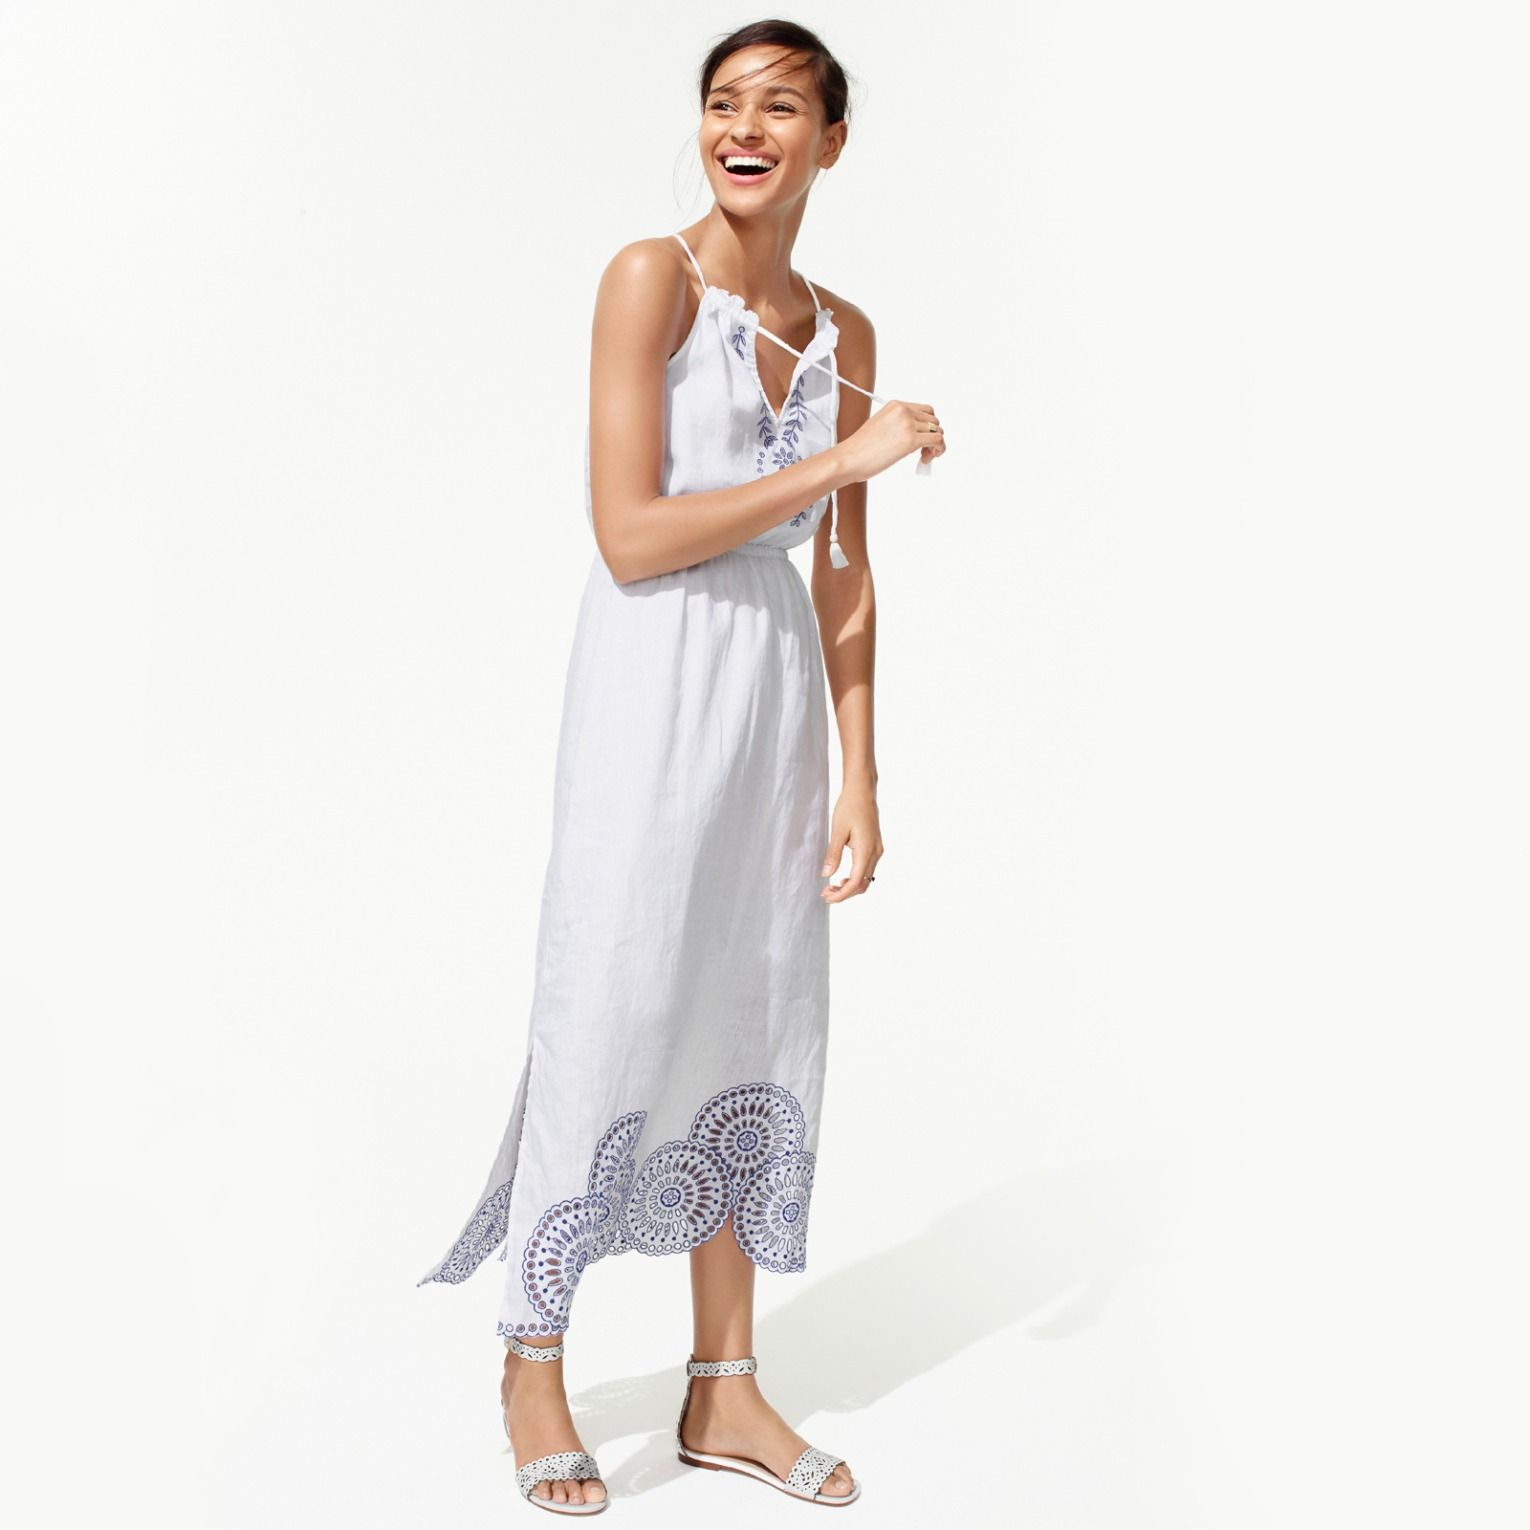 ee89925814 J.Crew Looks We Love: women's linen dress with eyelet detail and leather  eyelet sandals with ankle strap.